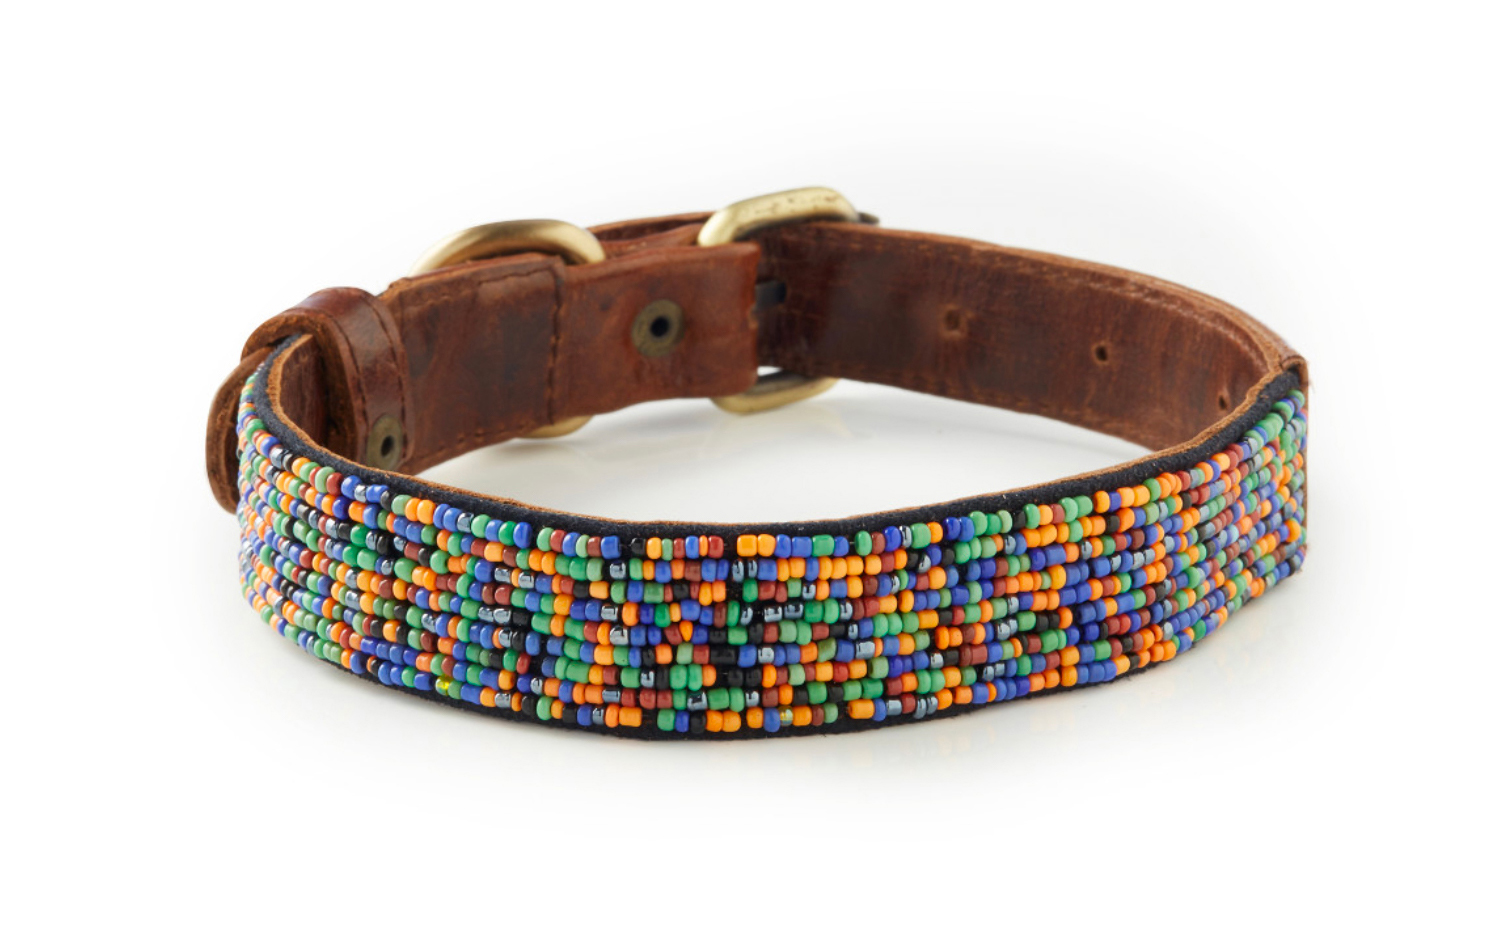 Medewi - Hand Beaded Italian Leather Dog Collar